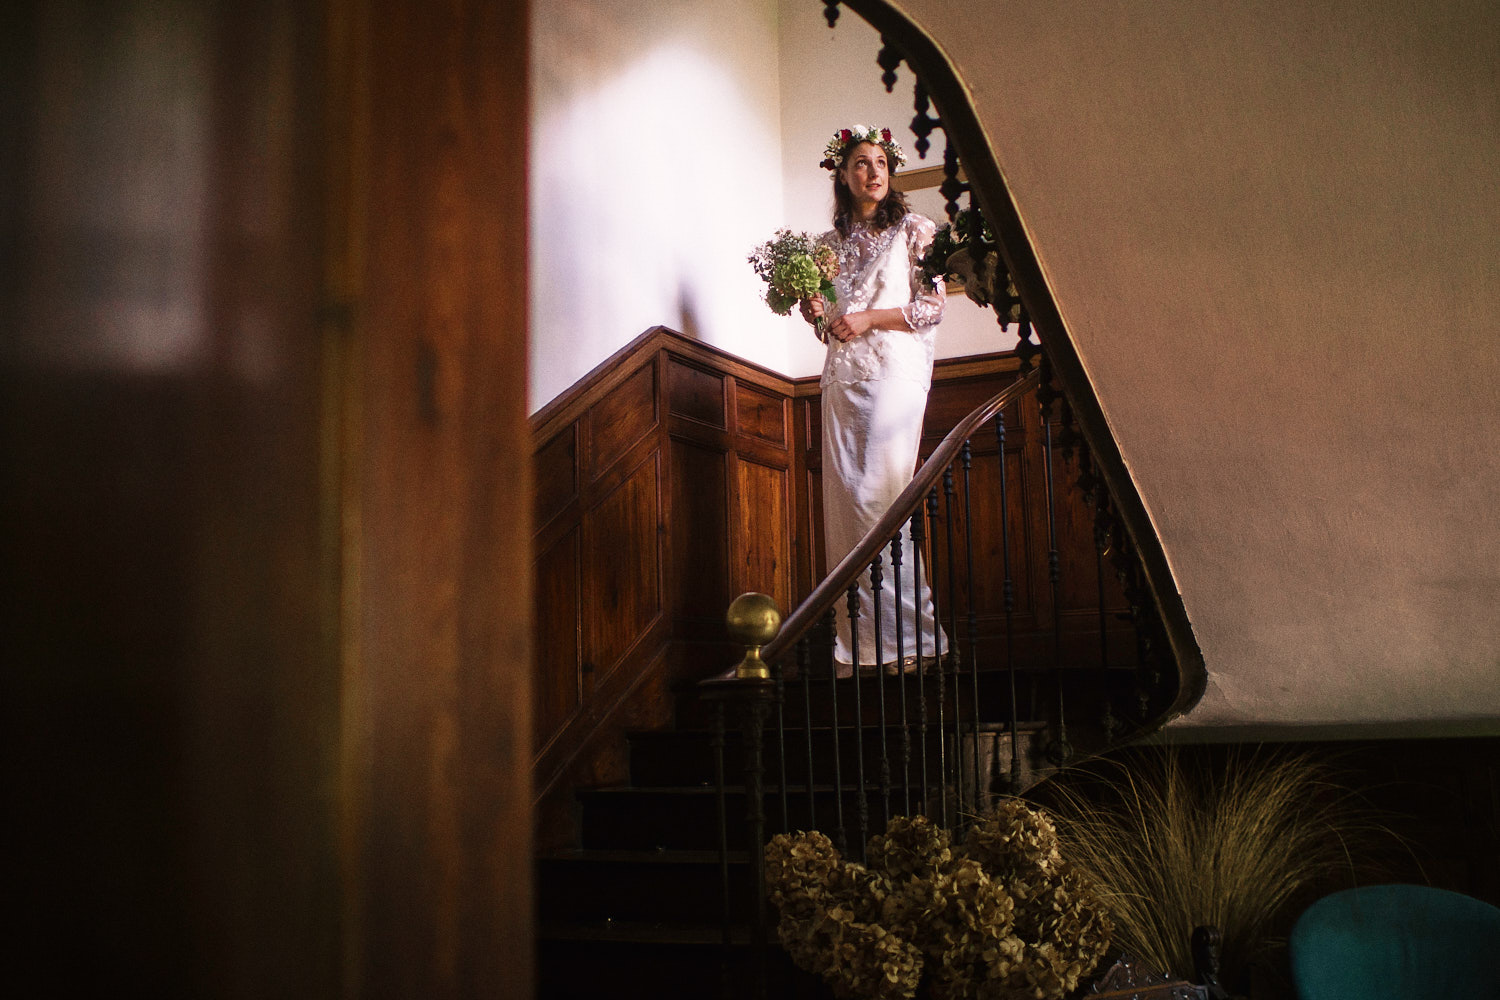 Bride walks down wooden stairs in white dress and floral head piece